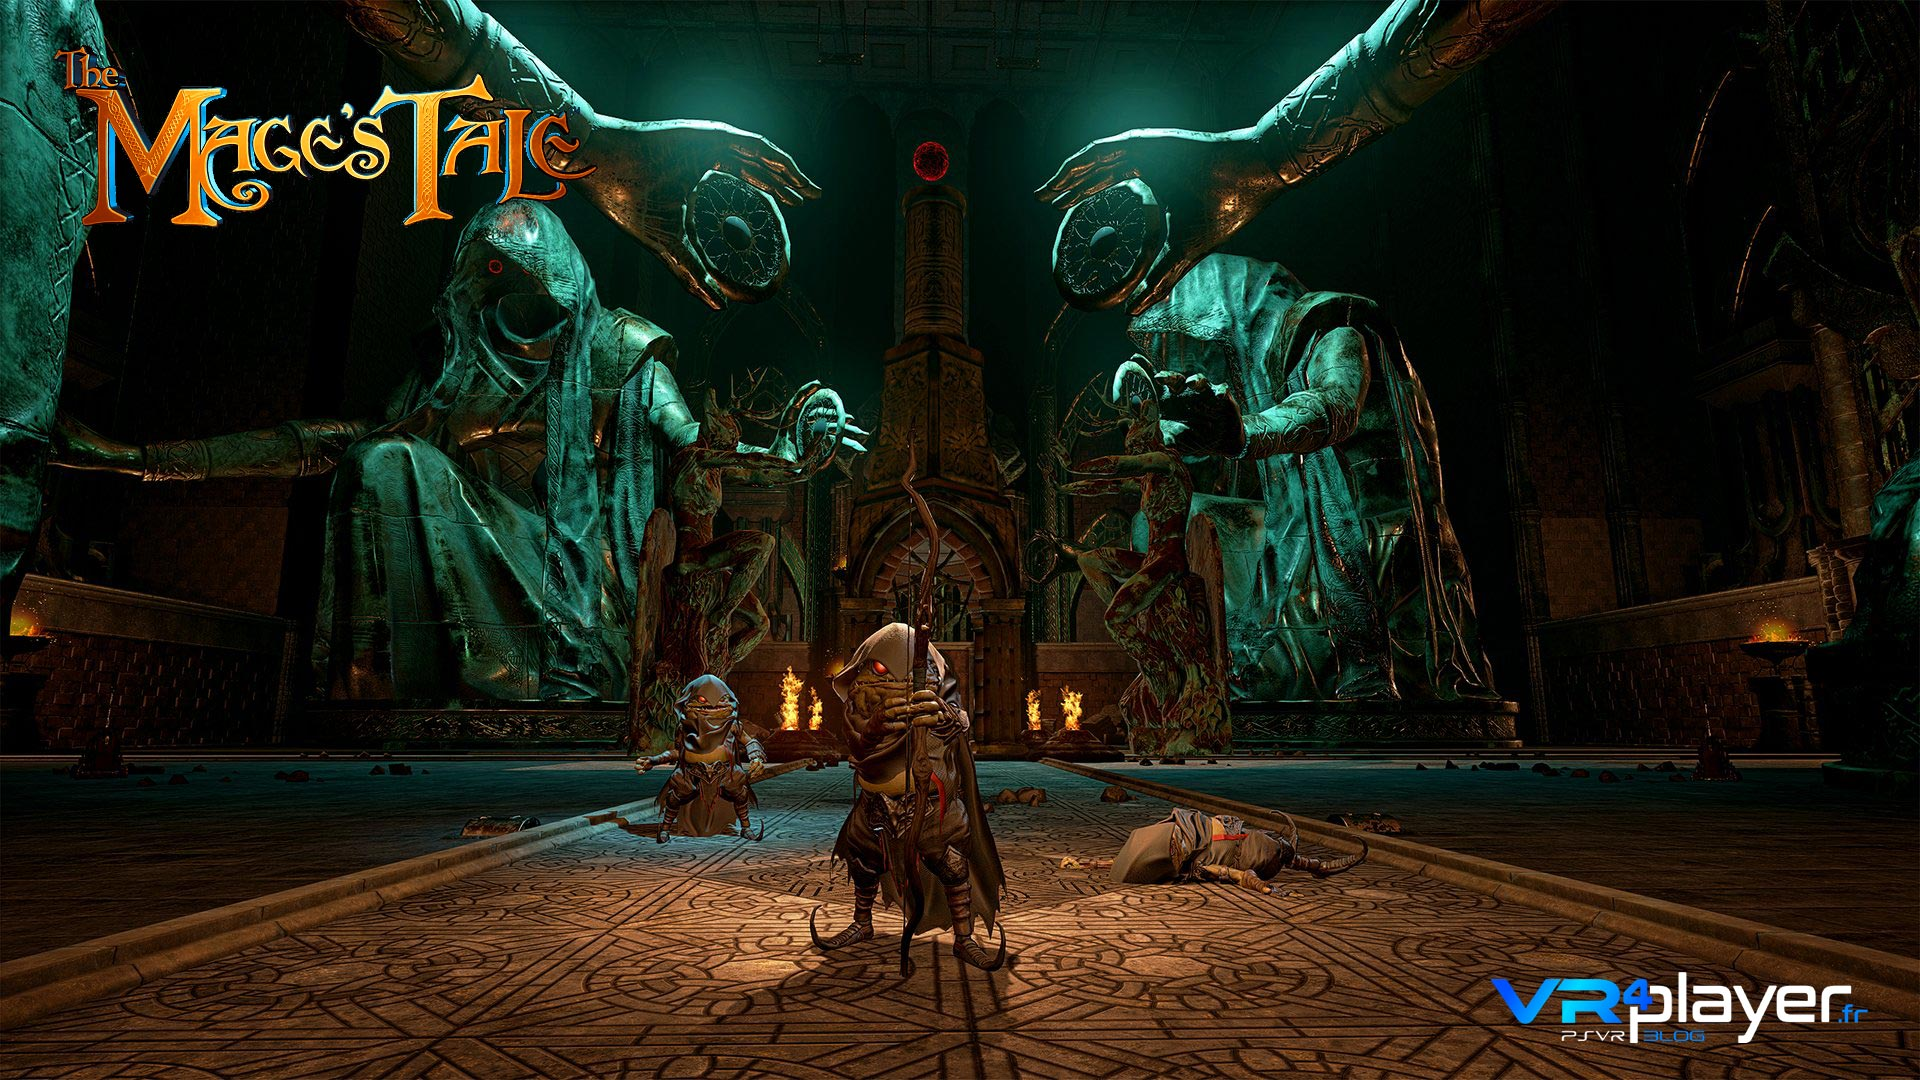 The Mage's Tale PlayStation VR vrplayer.fr